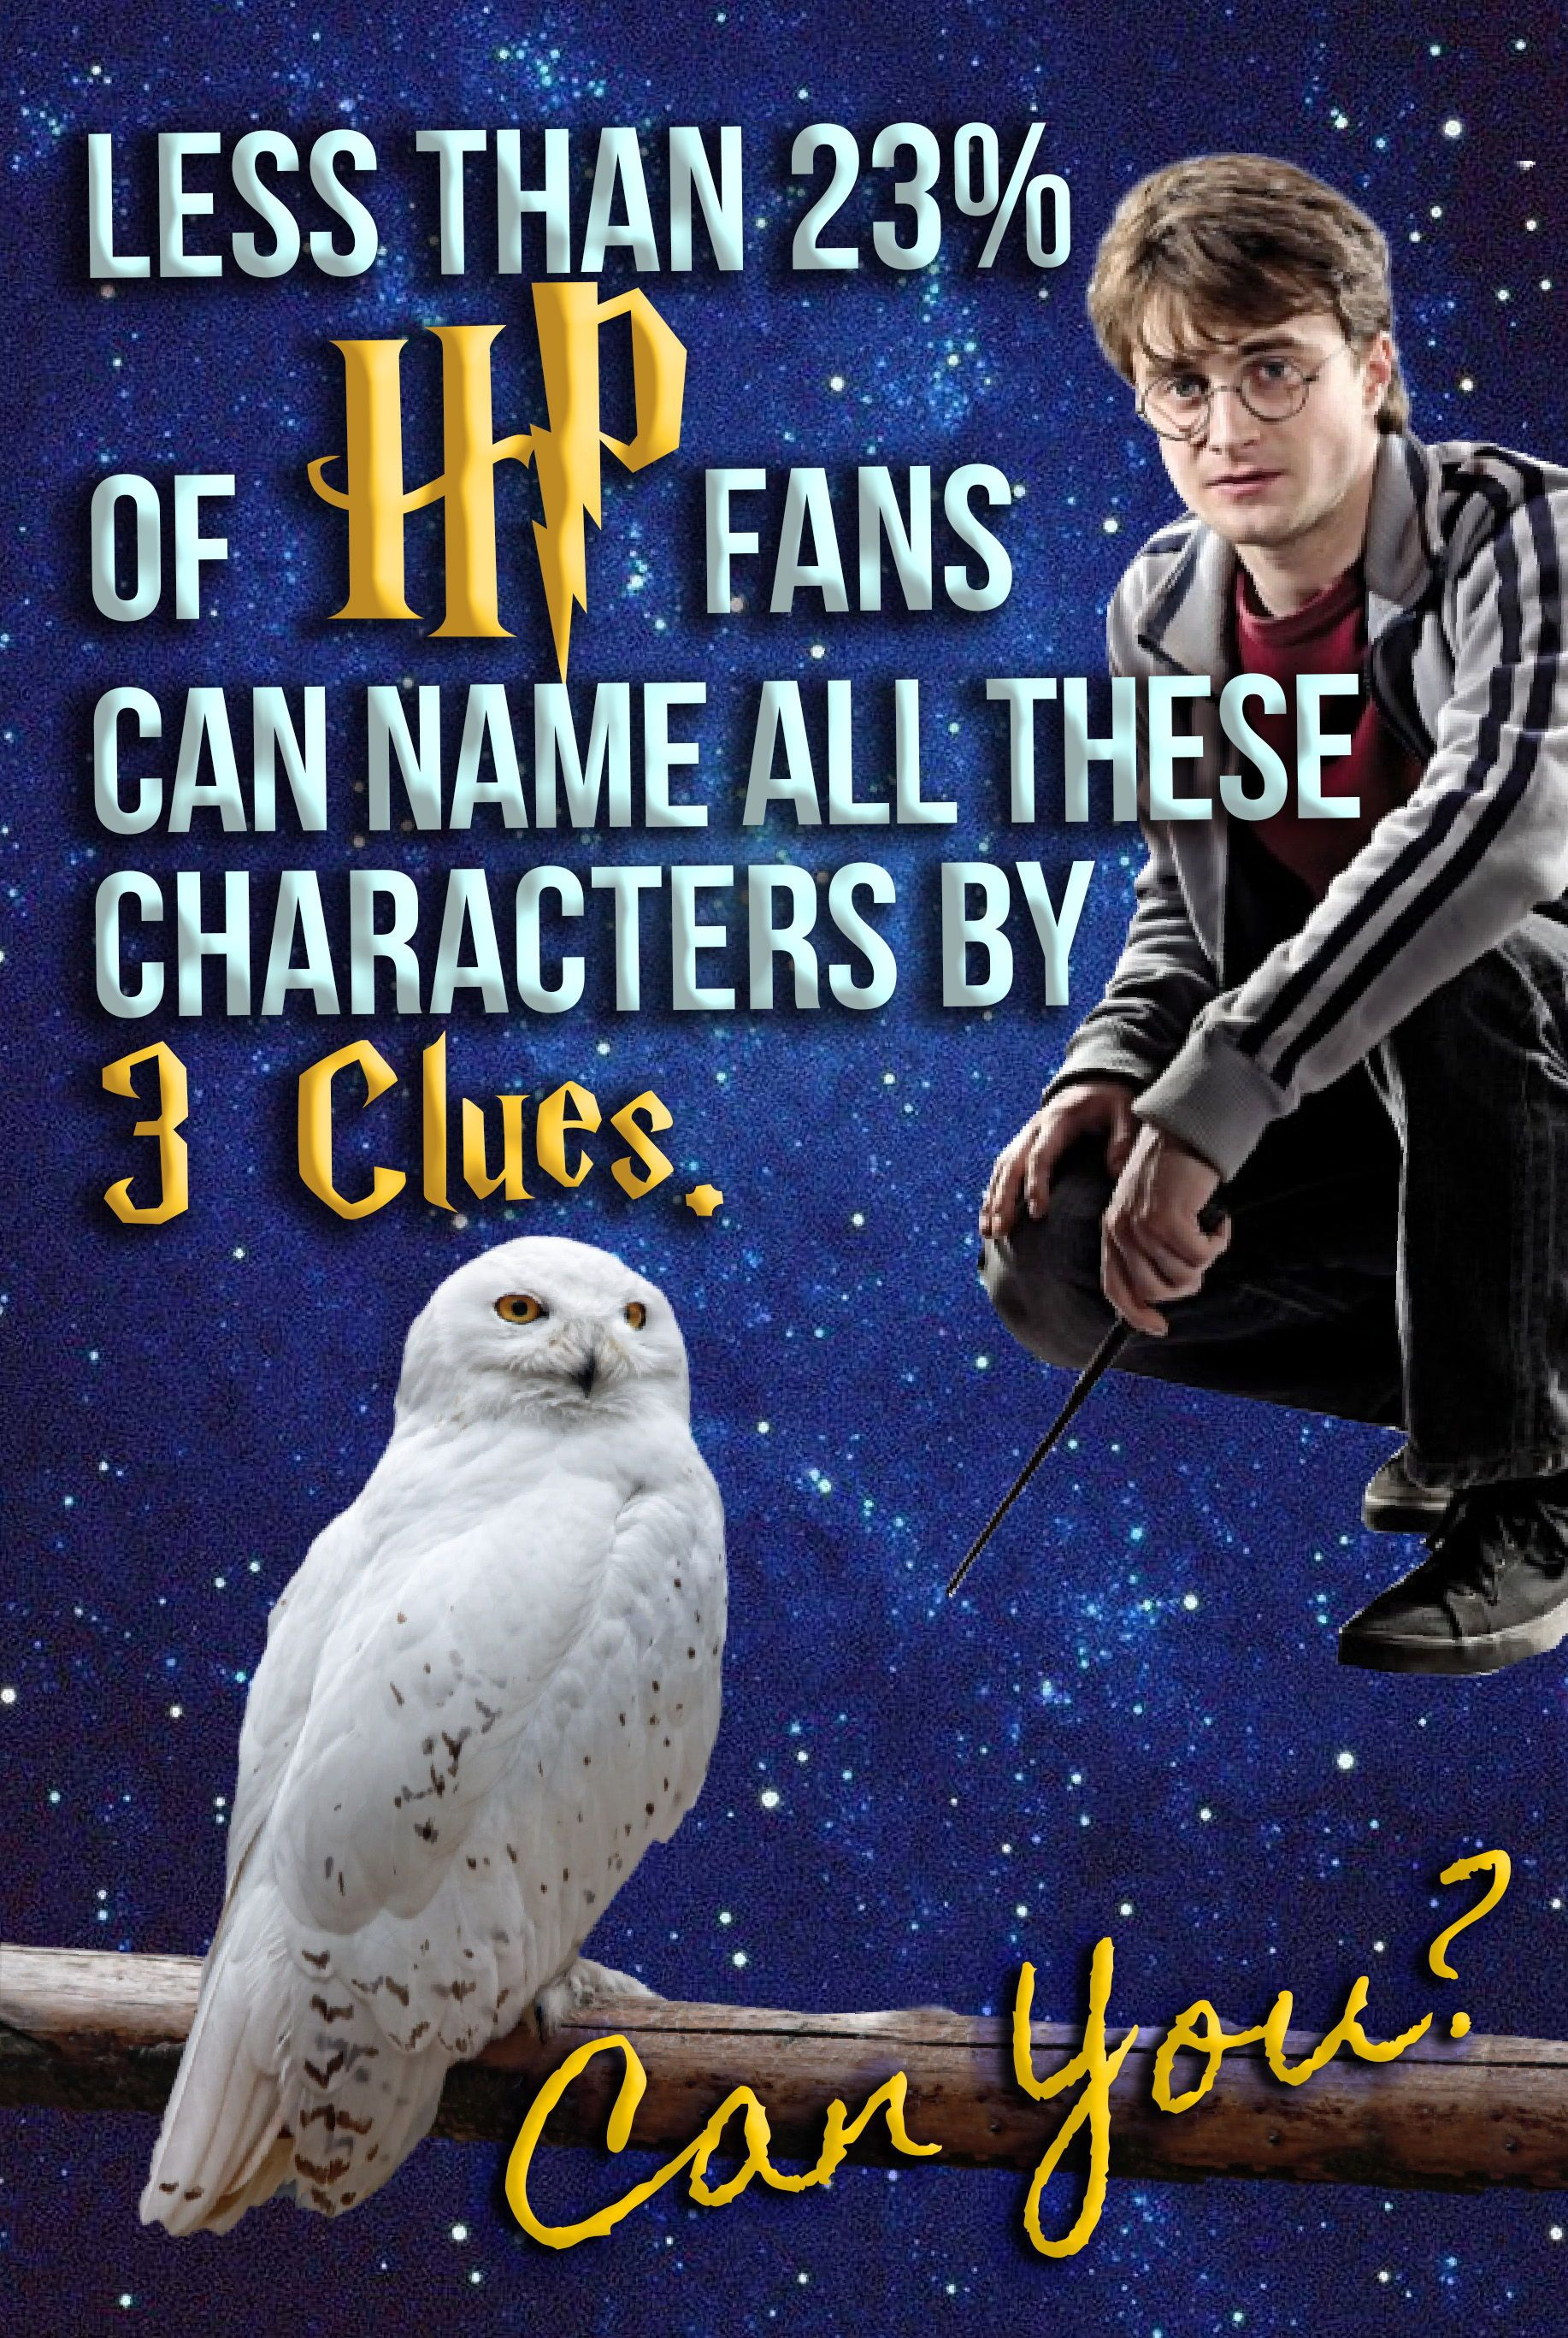 Less Than 23% Of HP Fans Can Name ALL These Characters By 3 Clues